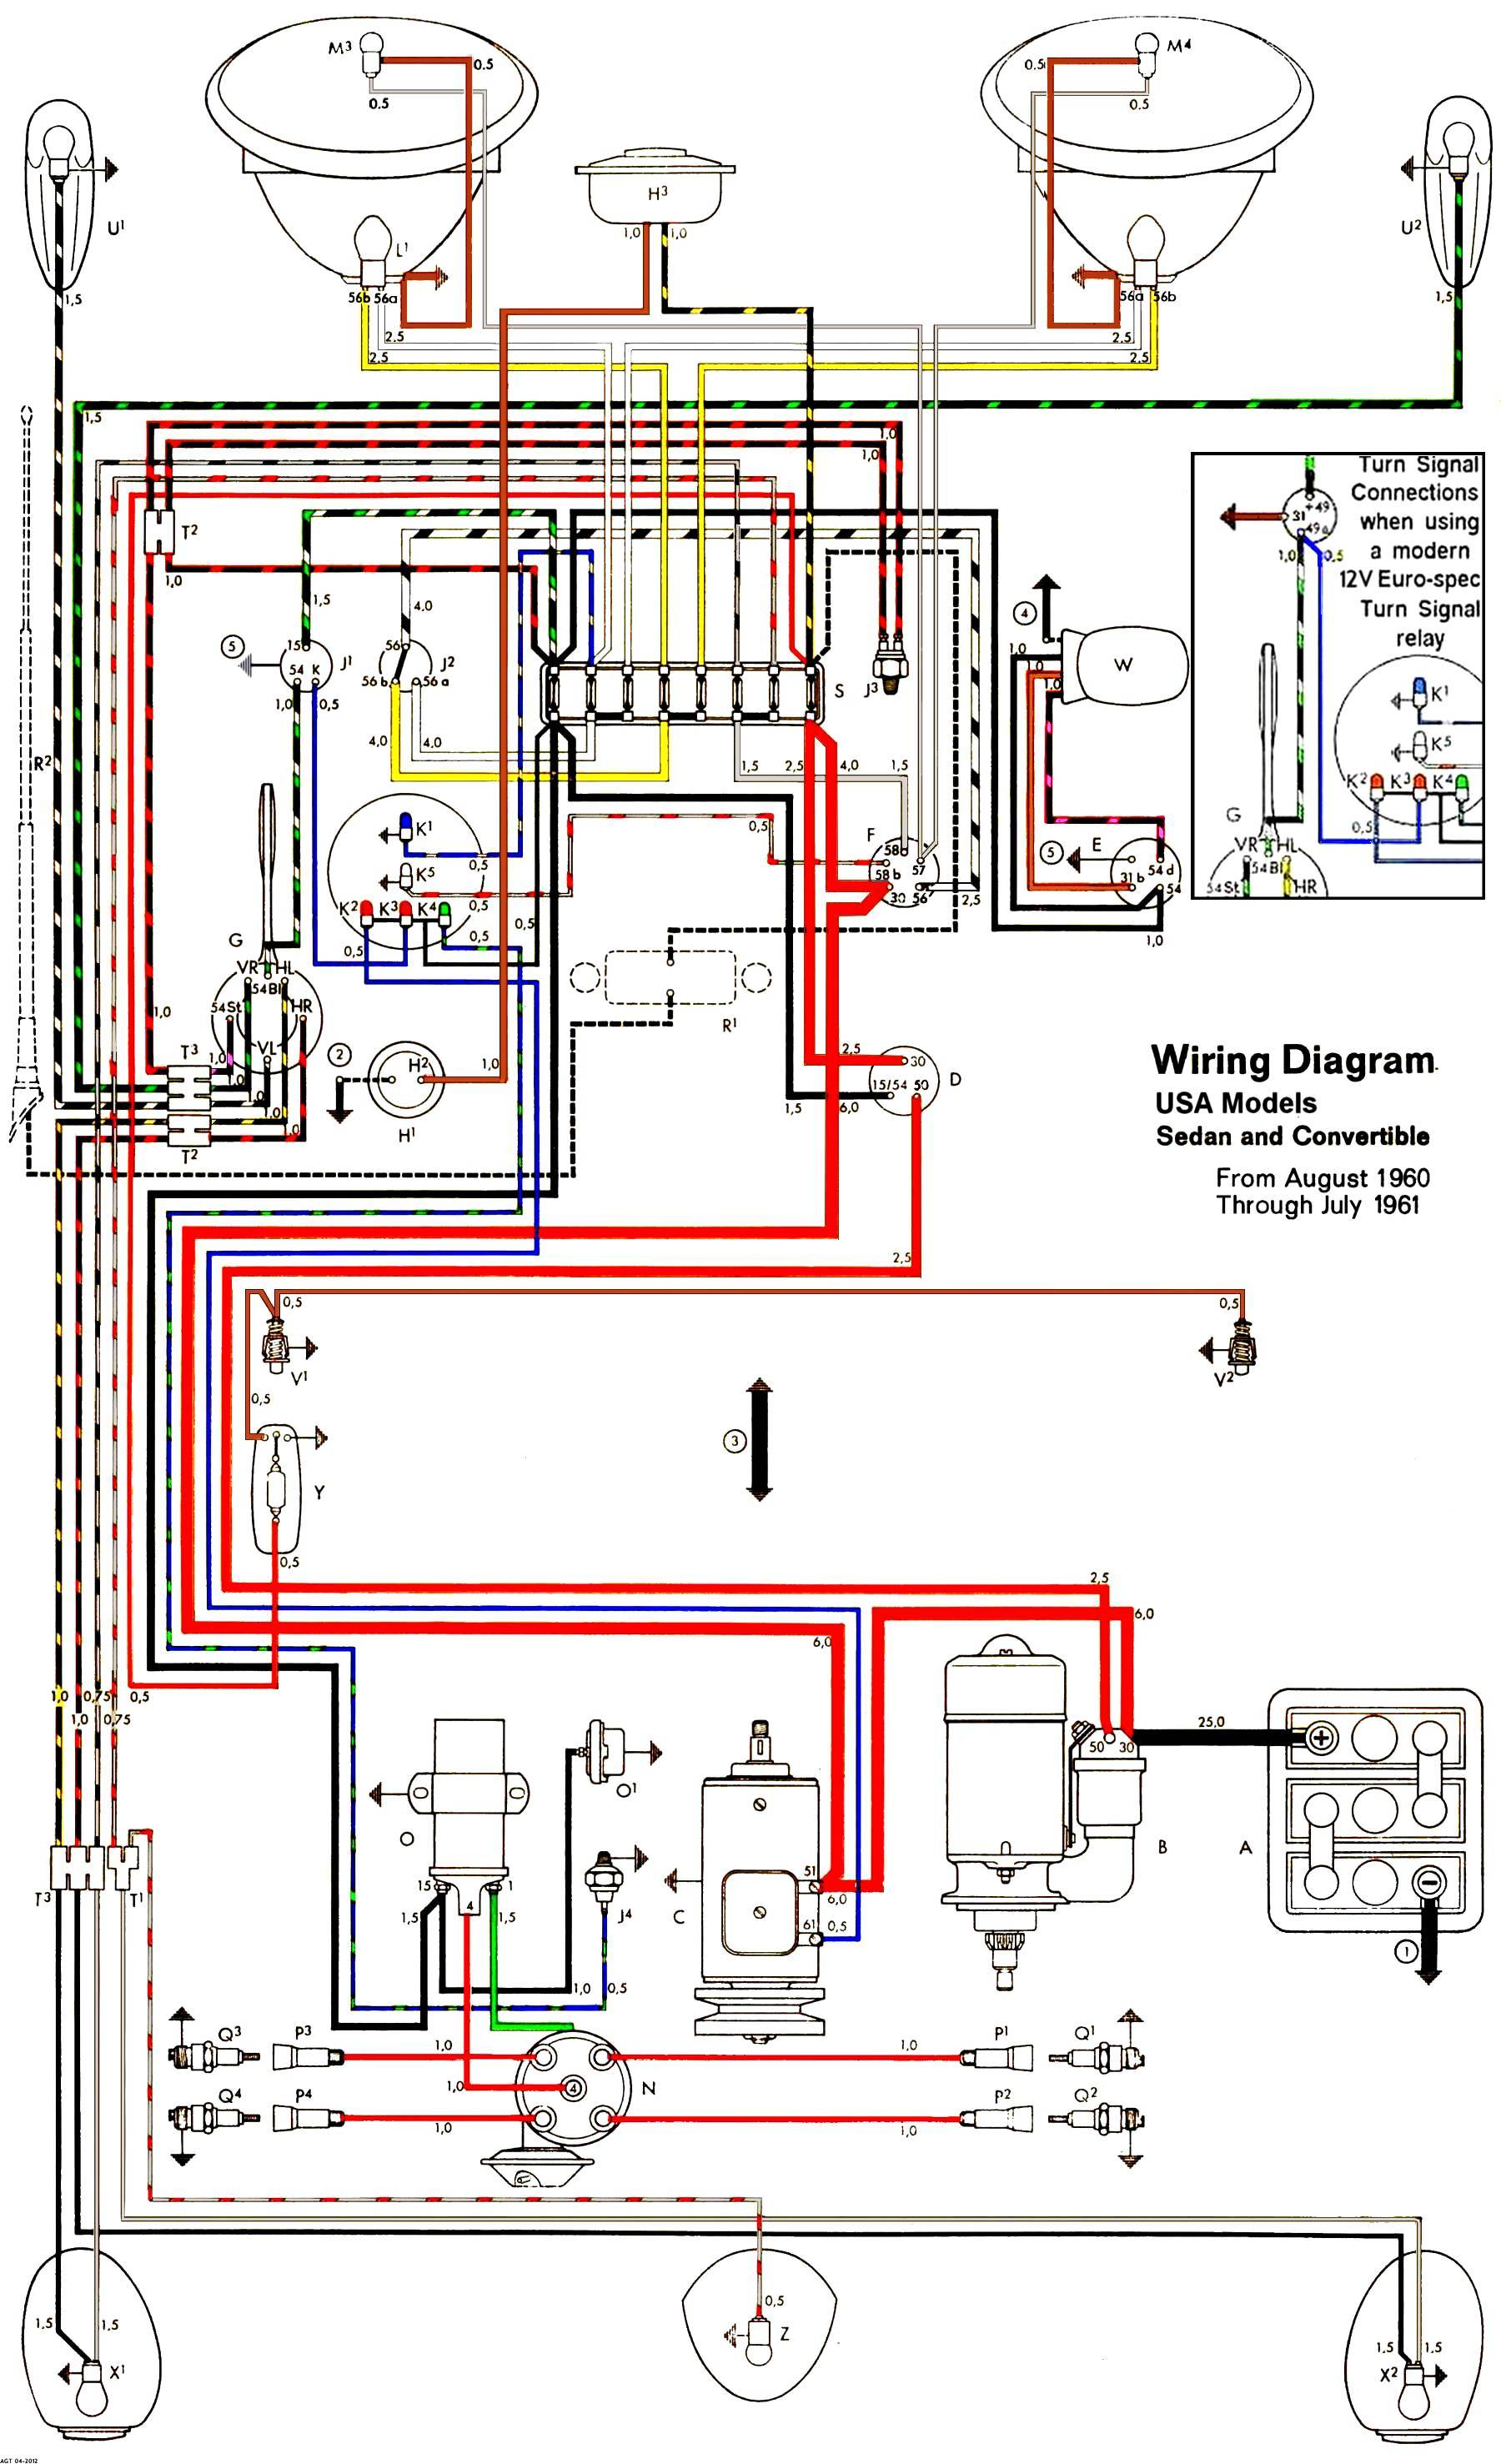 Vw Bug Wiring Kit - Wiring Diagrams  Chevrolet Apache Wiring Diagram on 1961 chevrolet truck, 1961 ford apache, 1958 gmc apache, chippewa apache, 1961 chevrolet deluxe, chevy apache, jeep apache, 1961 chevrolet stepside,